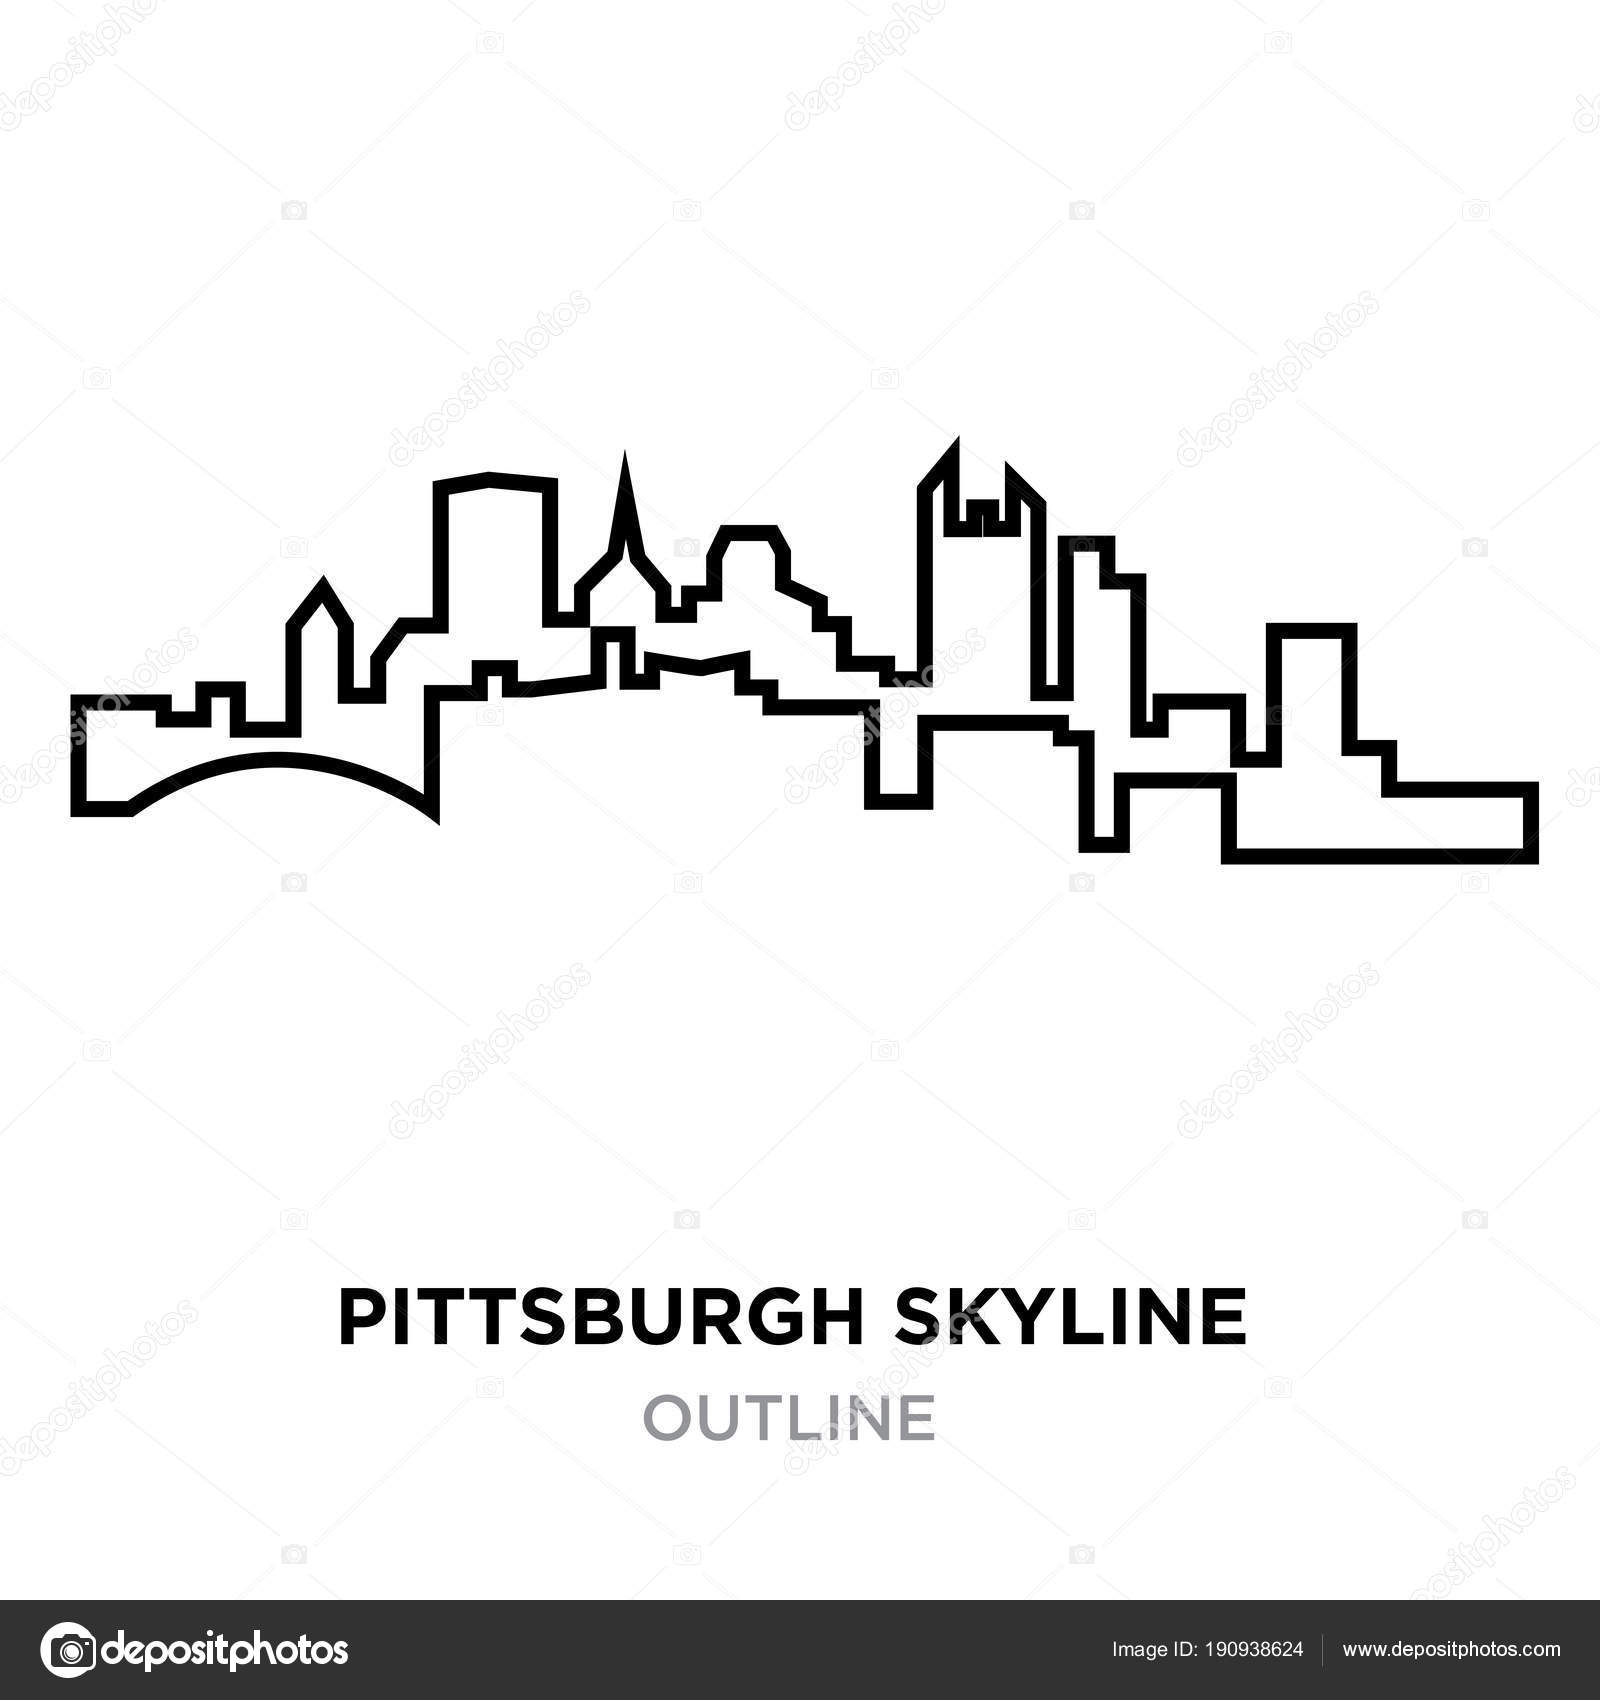 pittsburgh skyline outline downtown pittsburgh illustrations royalty free vector skyline outline pittsburgh